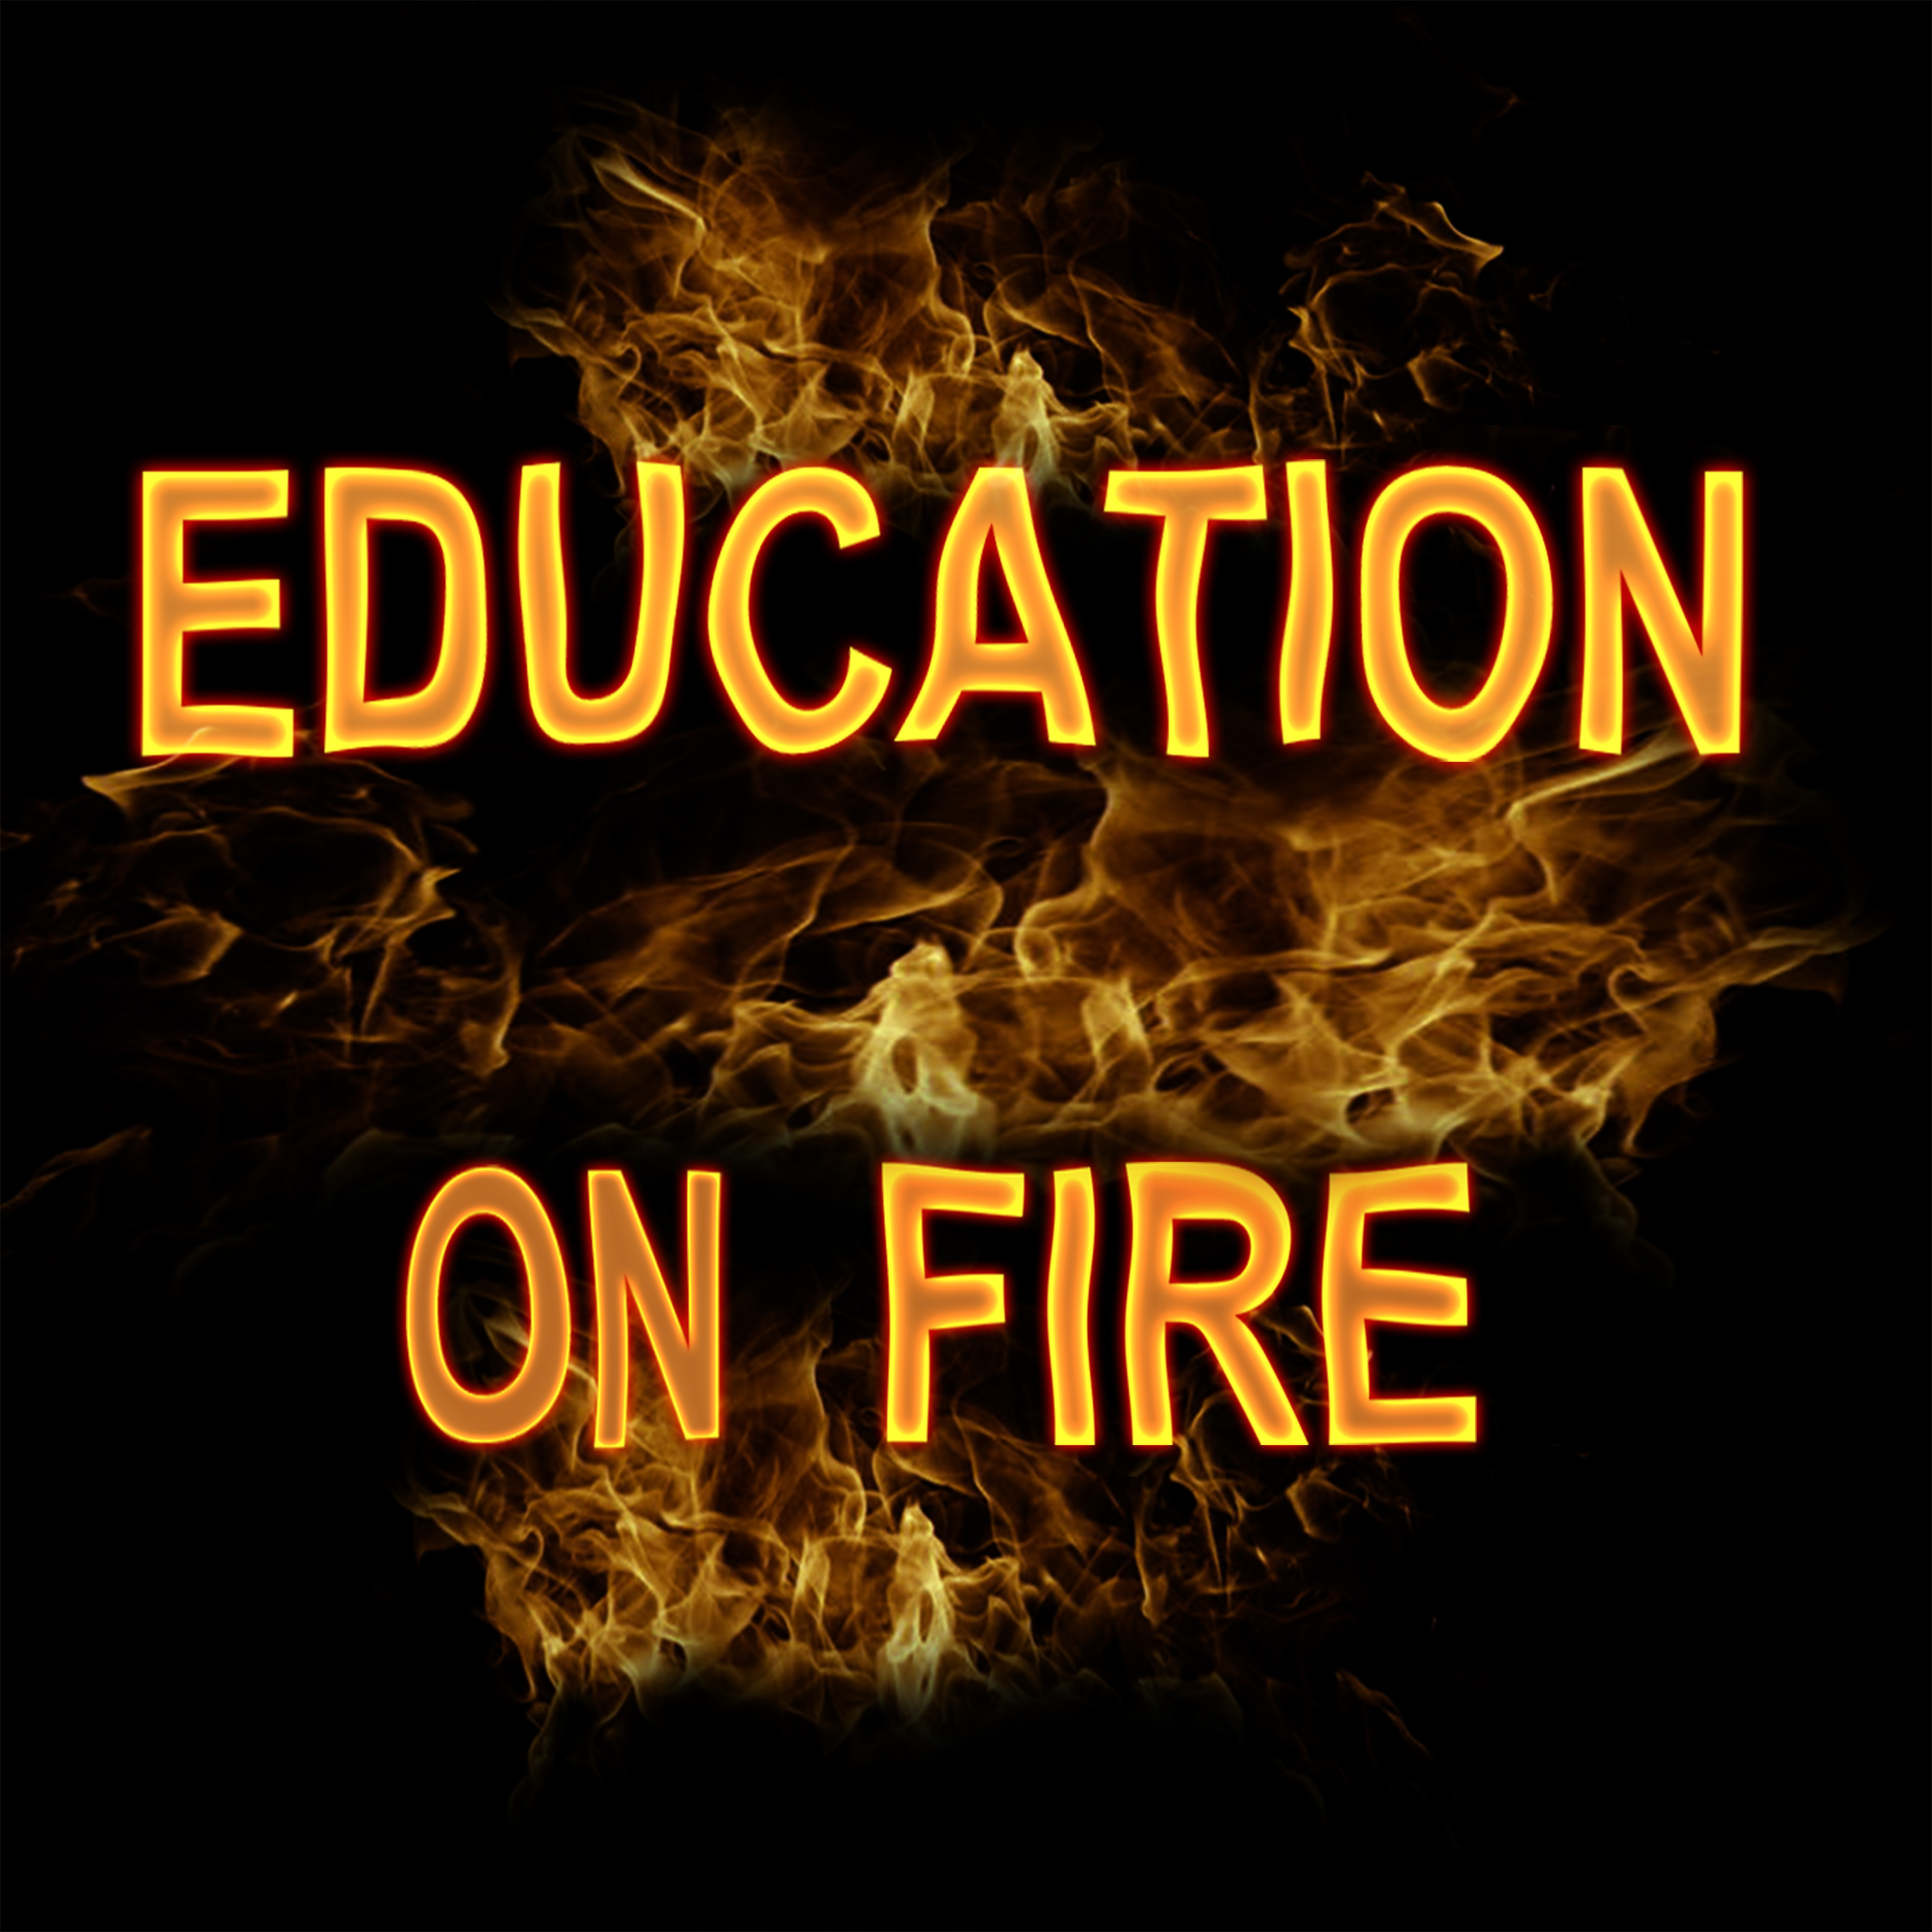 087: LitFilmFest English & Literacy Season 6 Launch - Education On Fire